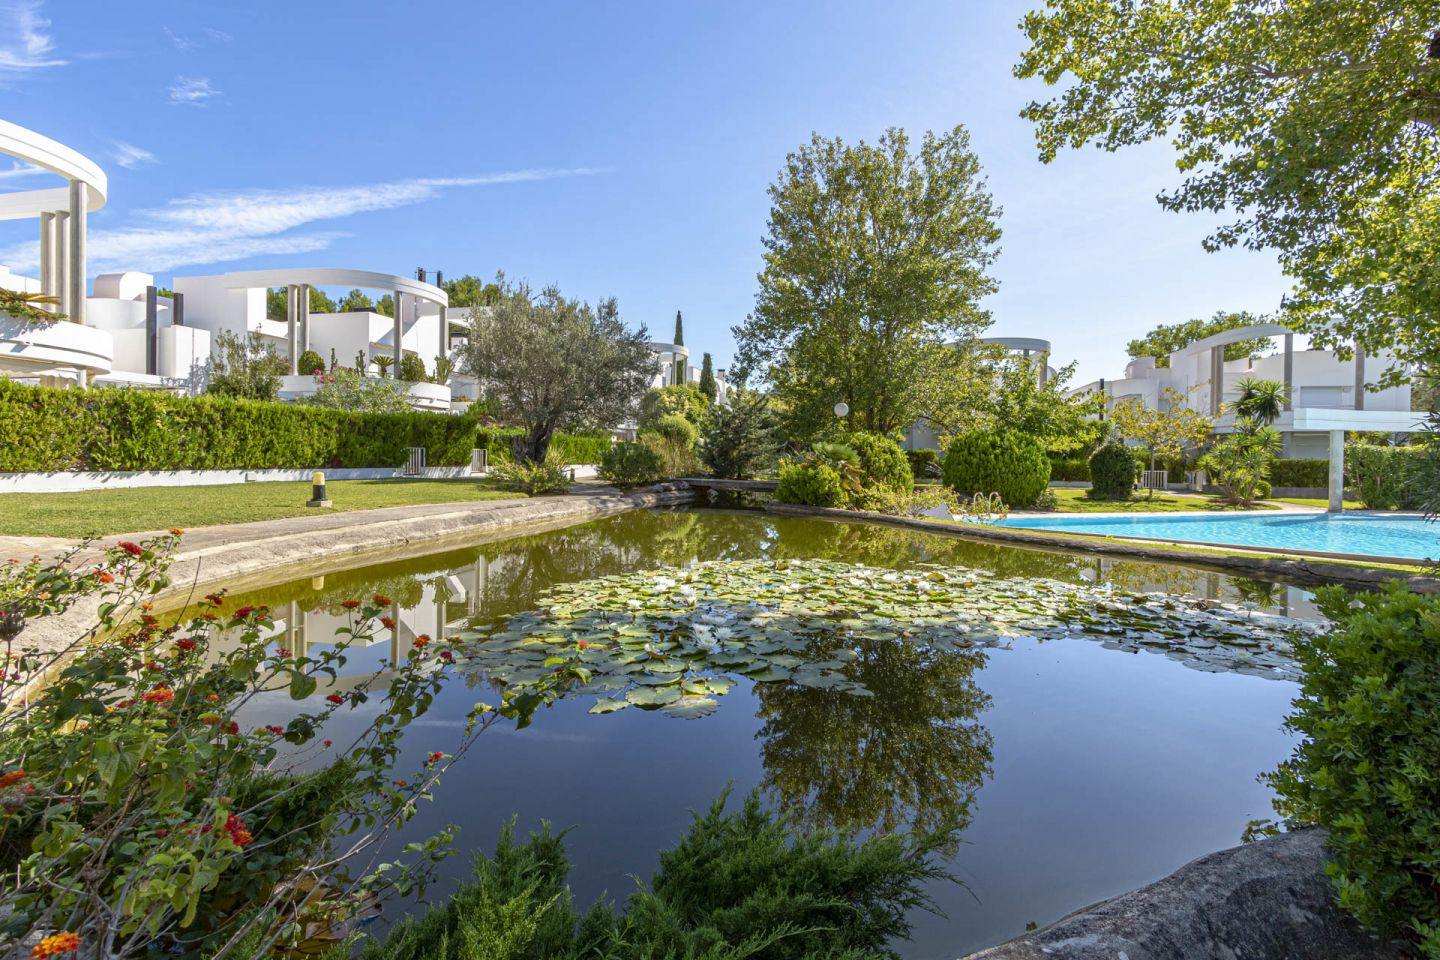 5 Bed Townhouse for sale in Puerto Pollensa 2